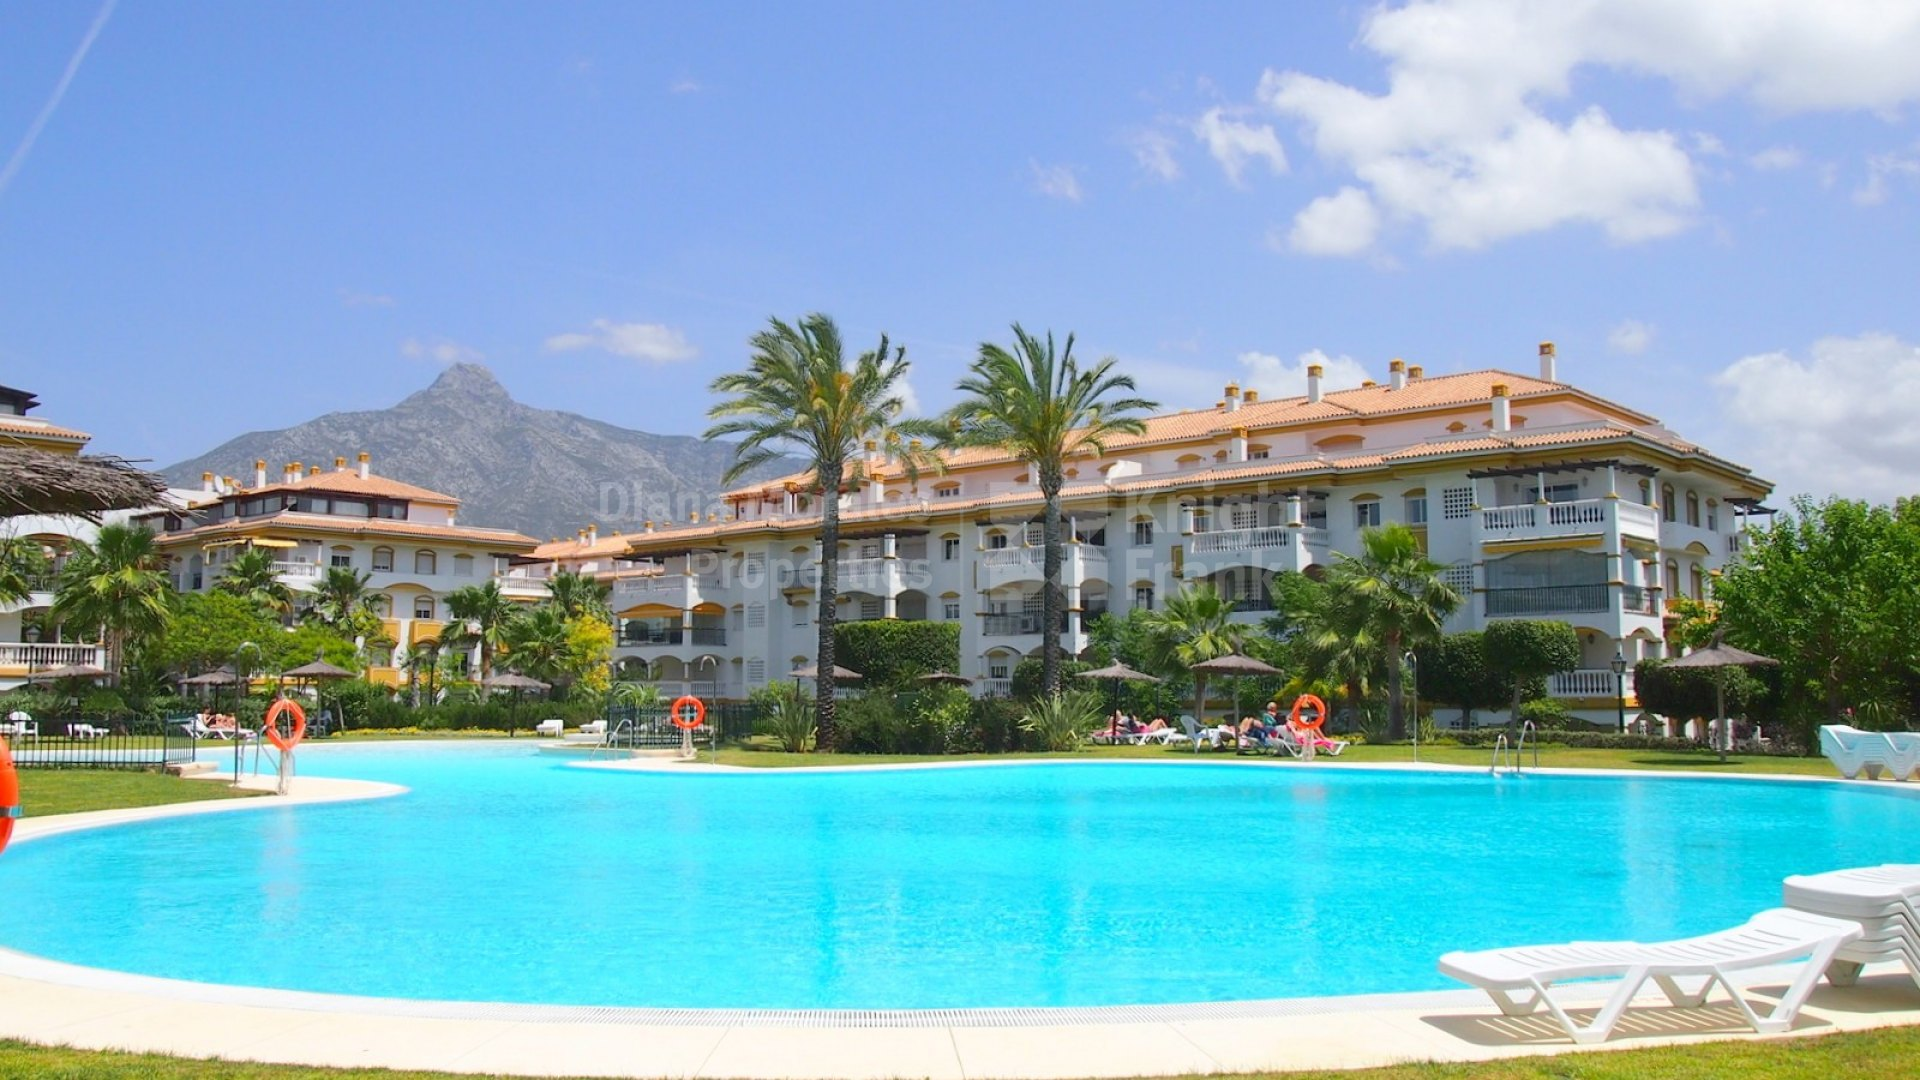 La Dama de Noche, Garden apartment close to Puerto Banus